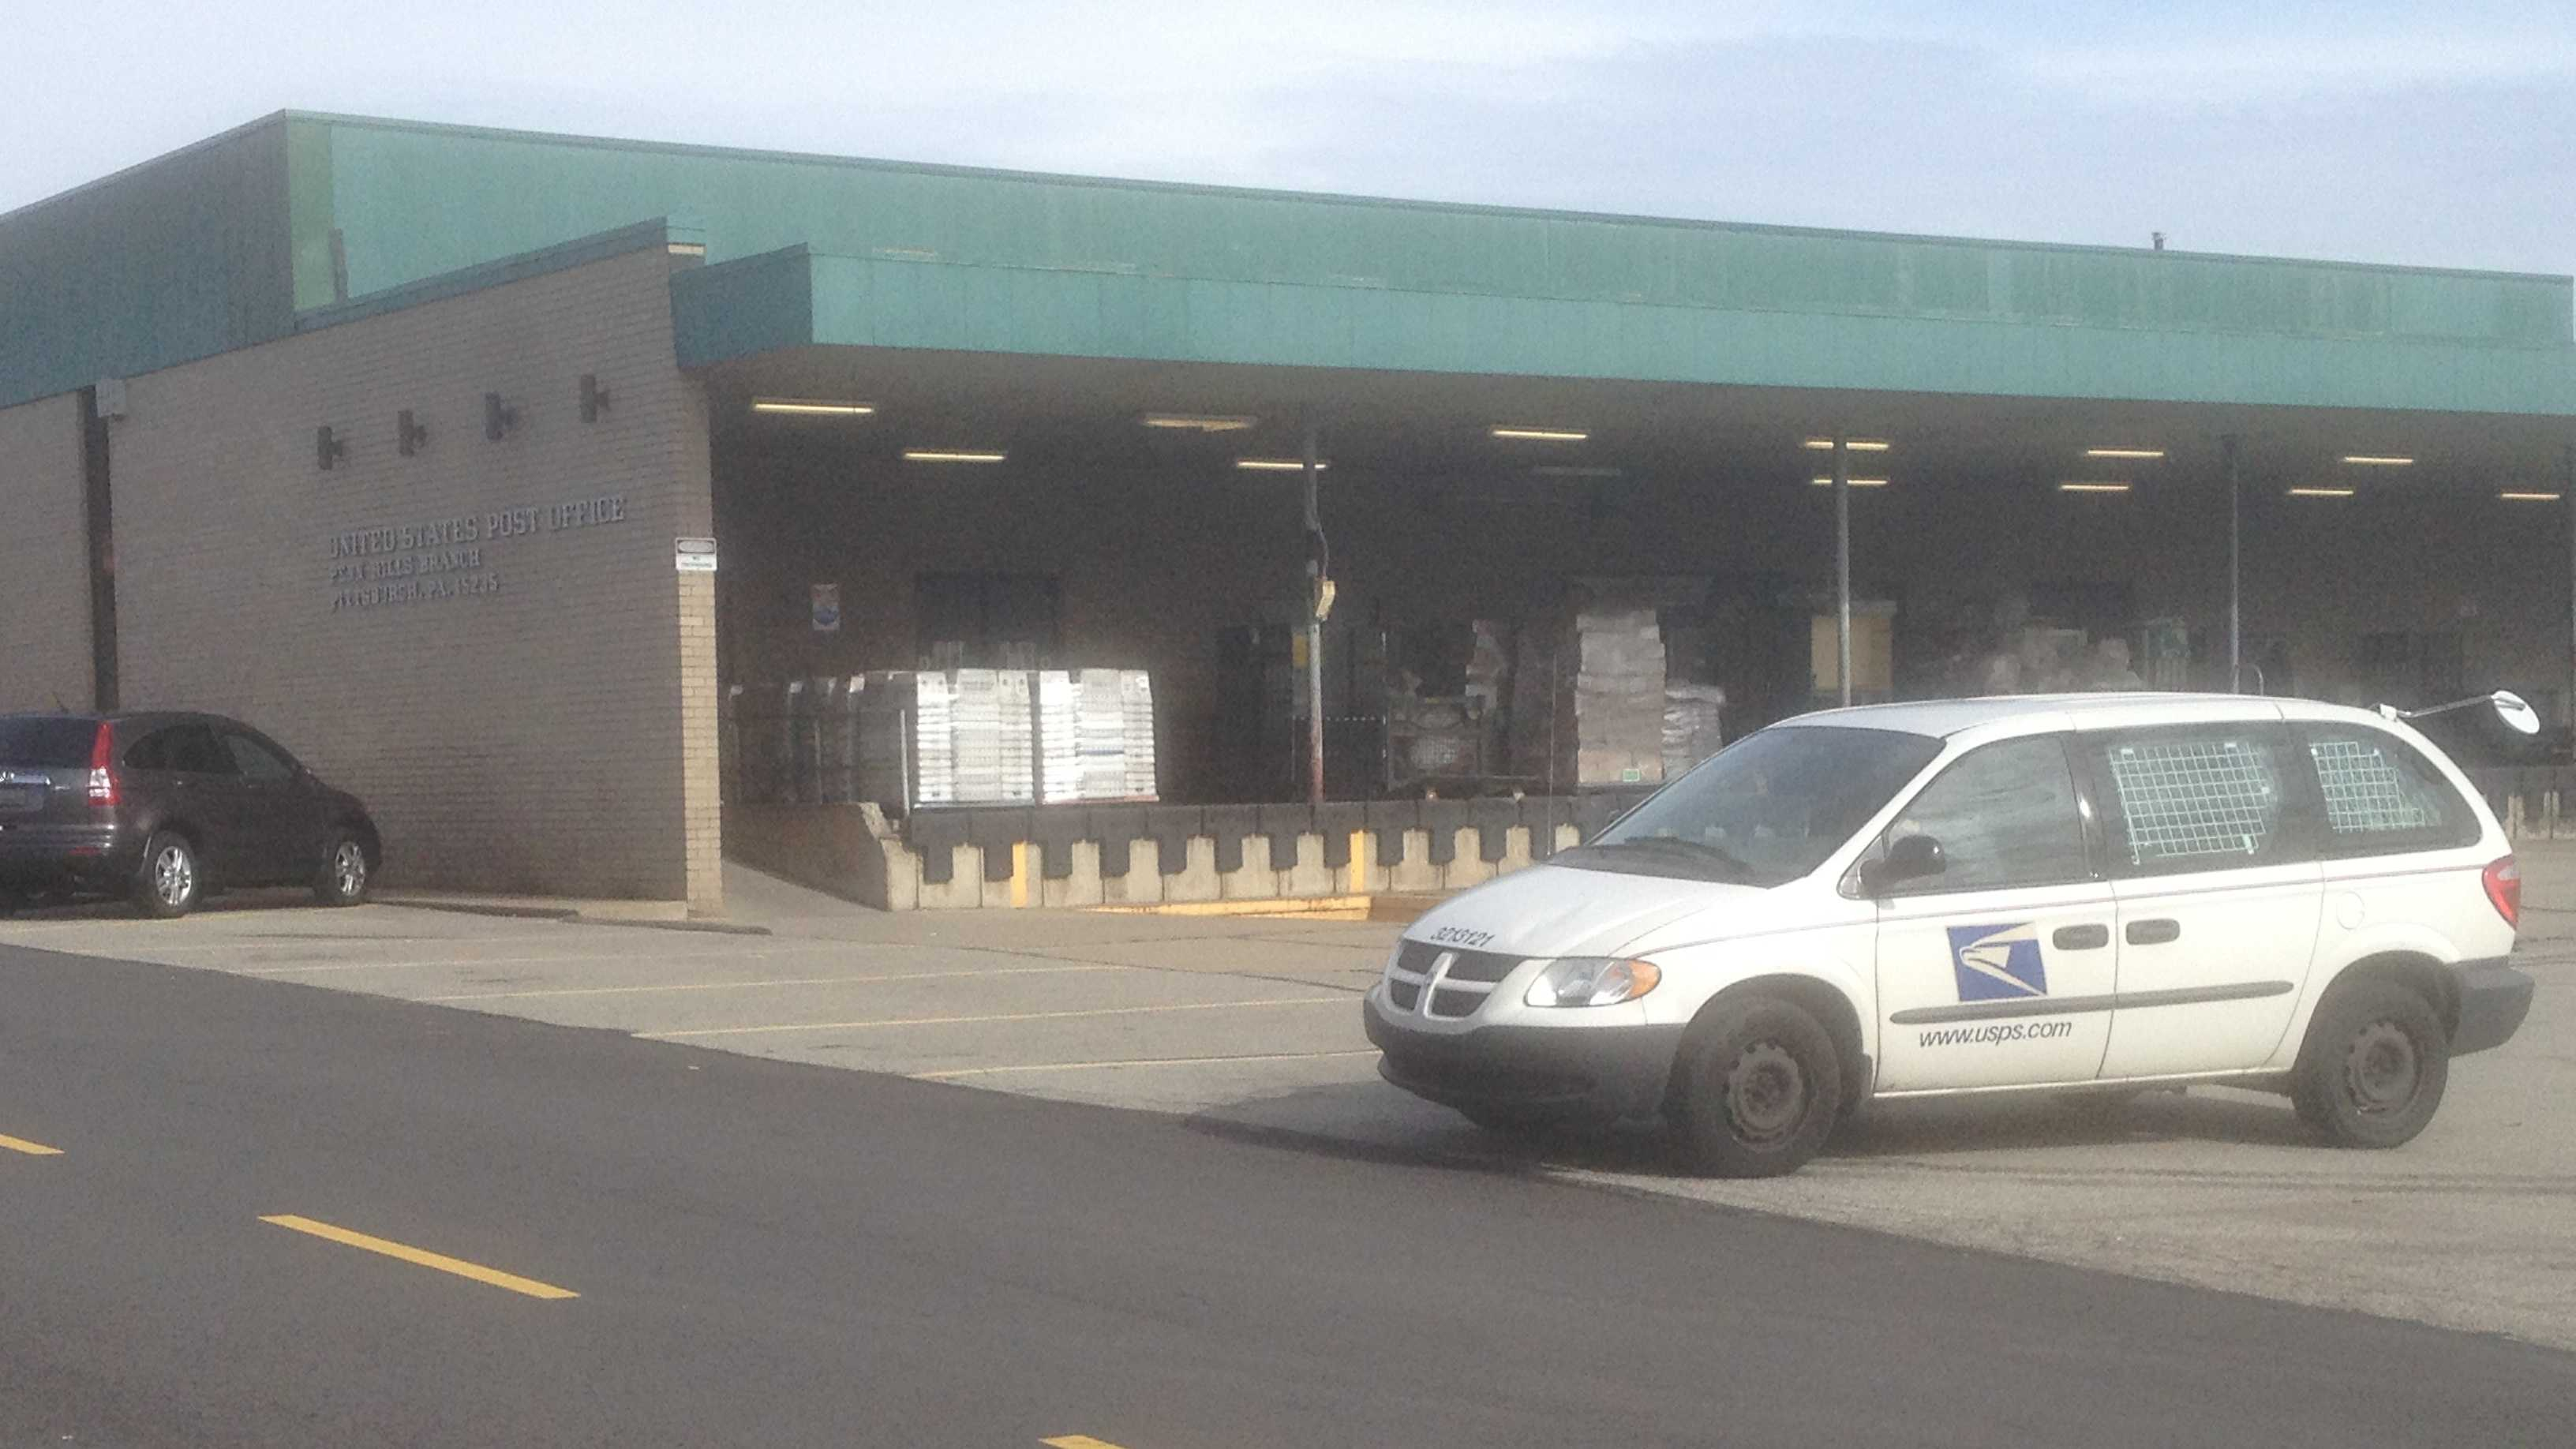 The post office at the Penn Hills Shopping Center.